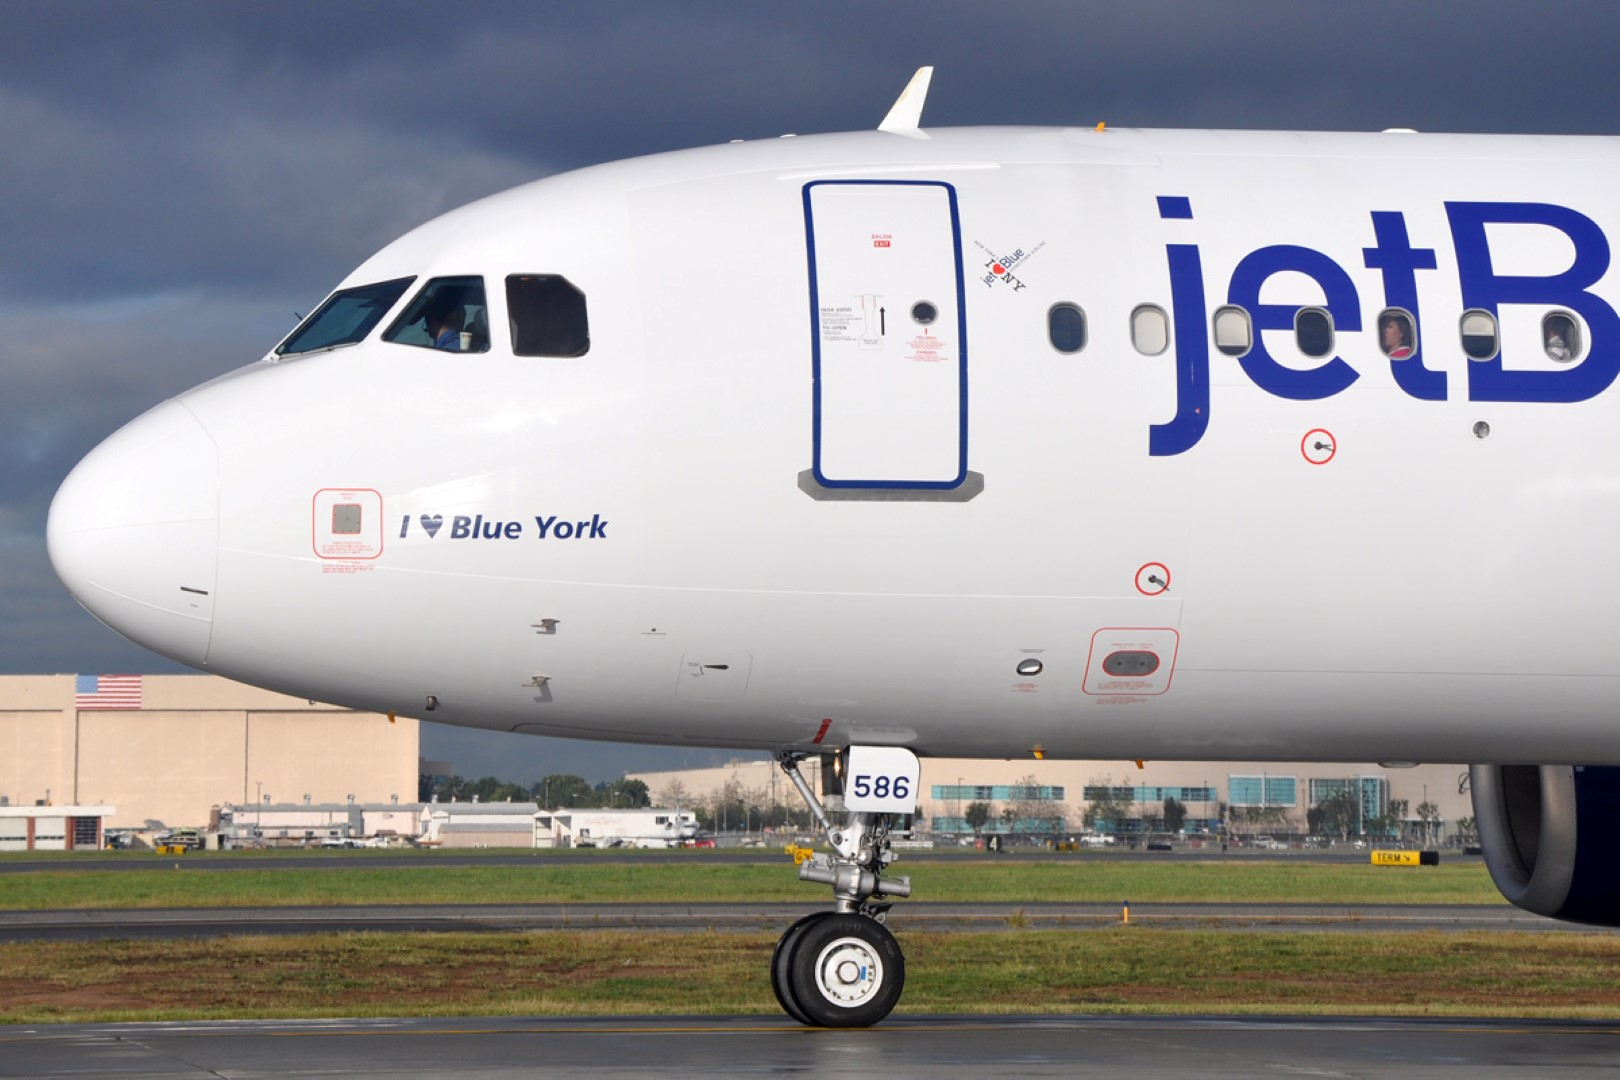 Jetblue will be forking over a $100 voucher to each passenger who was on the